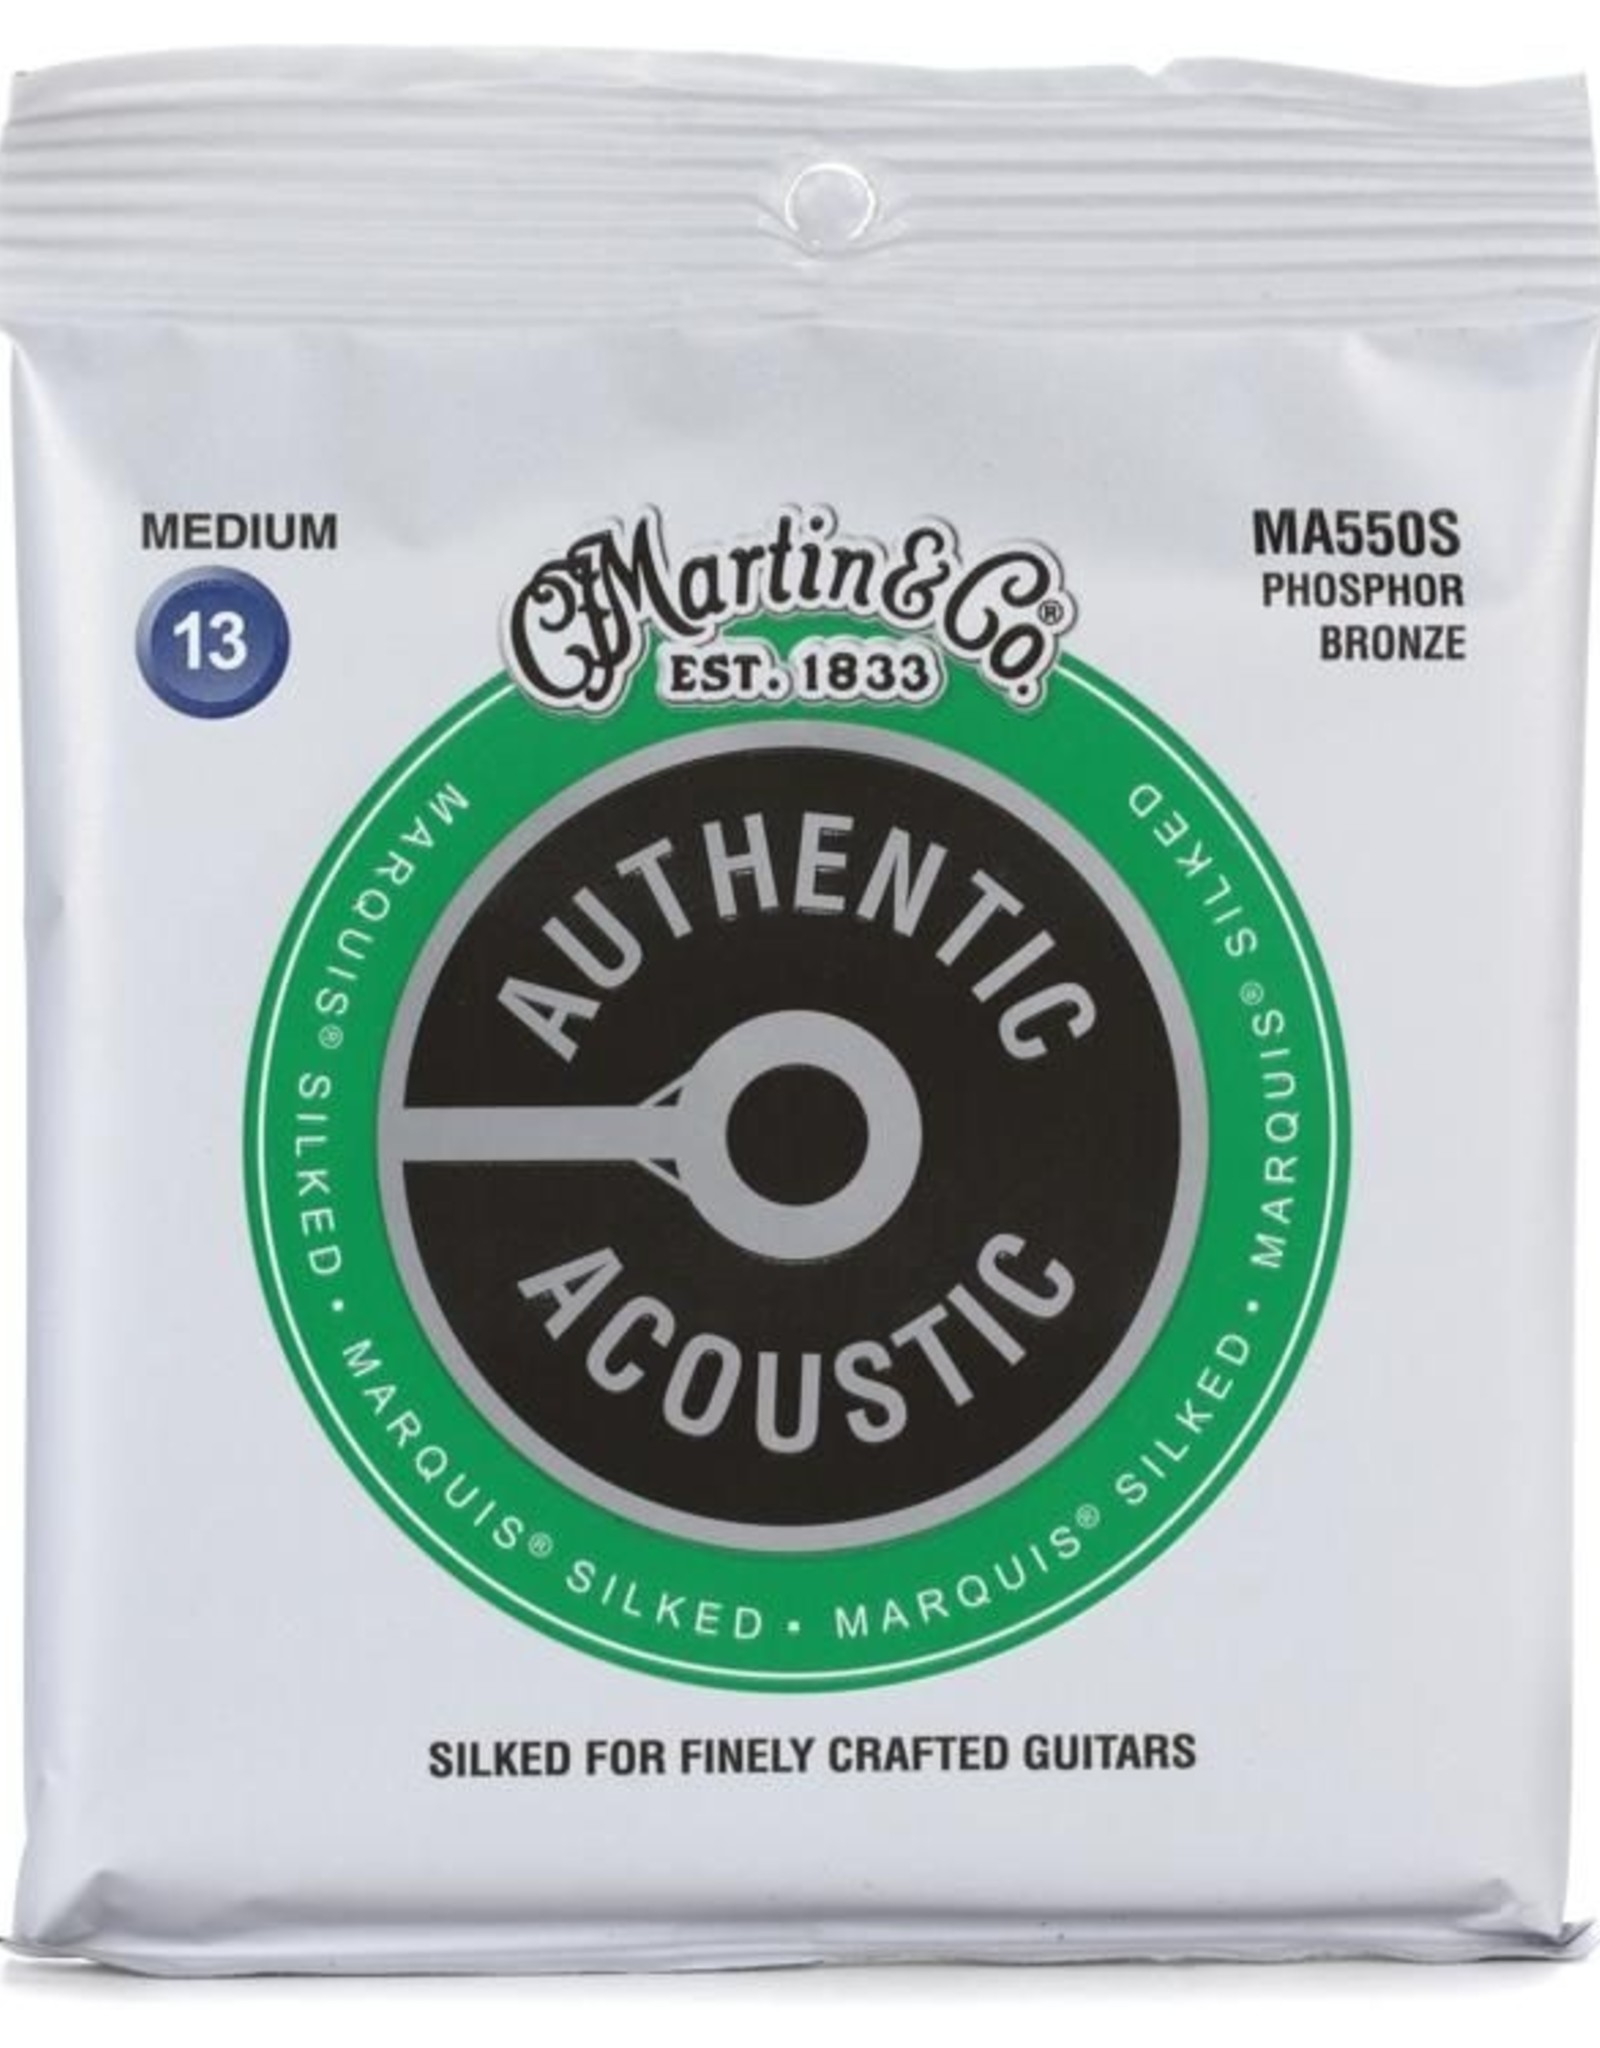 MARTIN Martin Marquis Phosphor Bronze Medium 13-56